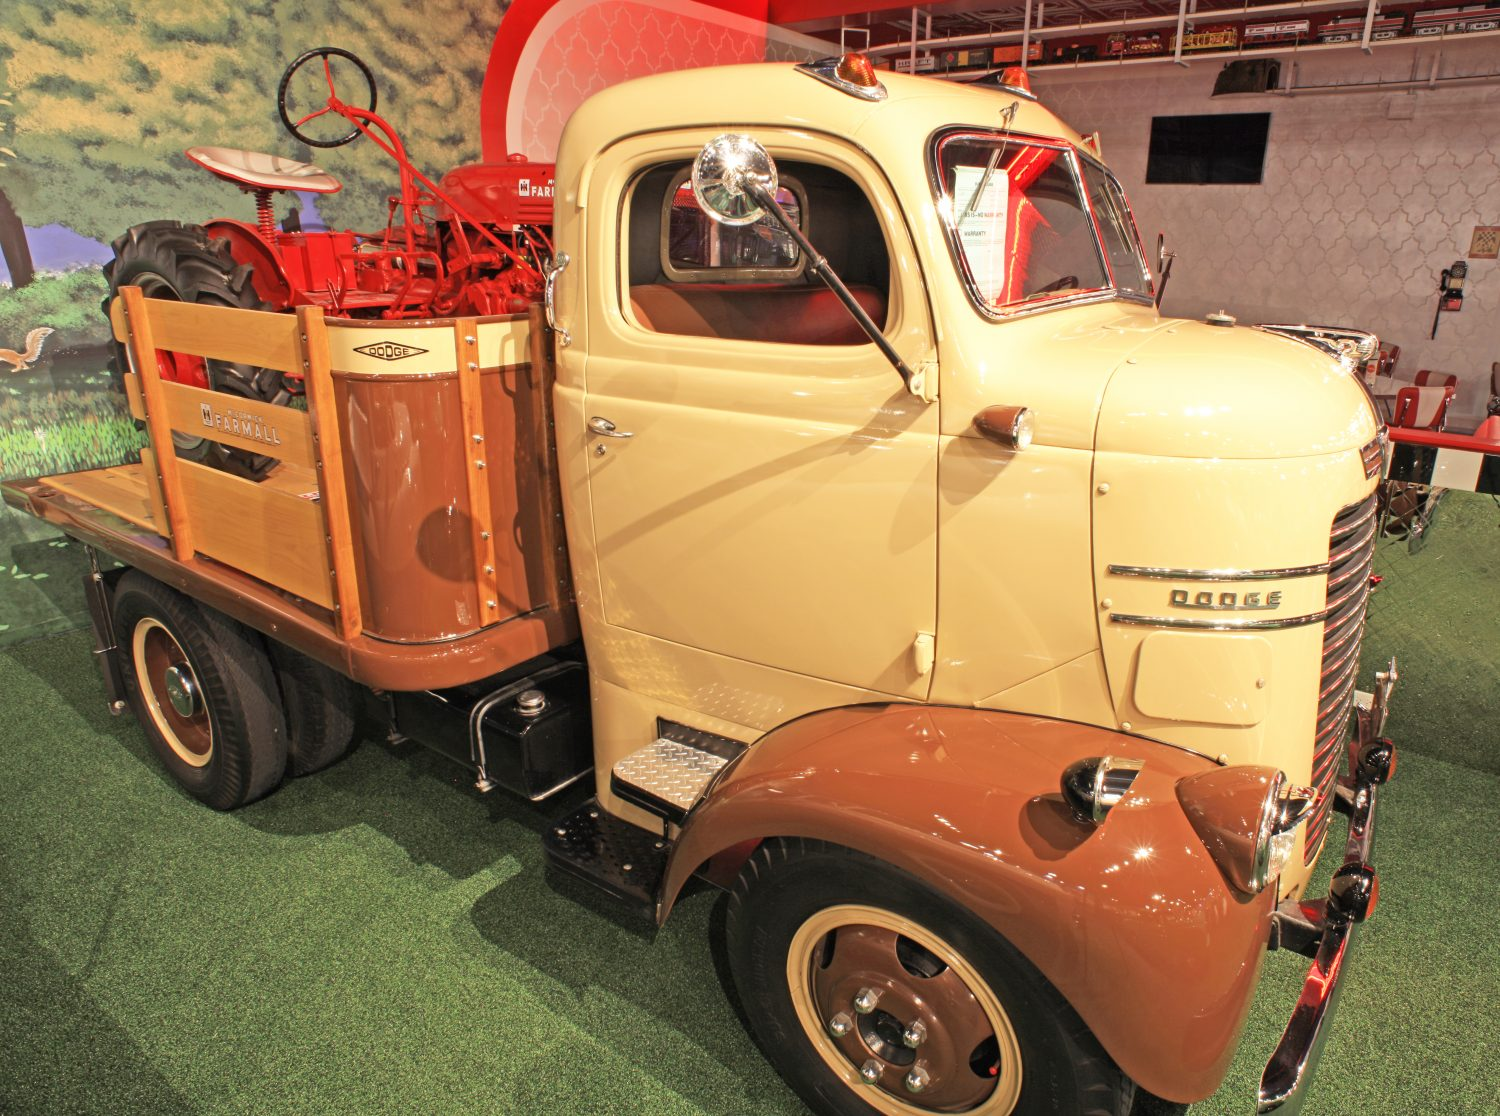 1946 Dodge Coe 2 Ton Truck Welcome To Cars Of Dreams Museum 1955 Buick Electra 225 Convertible